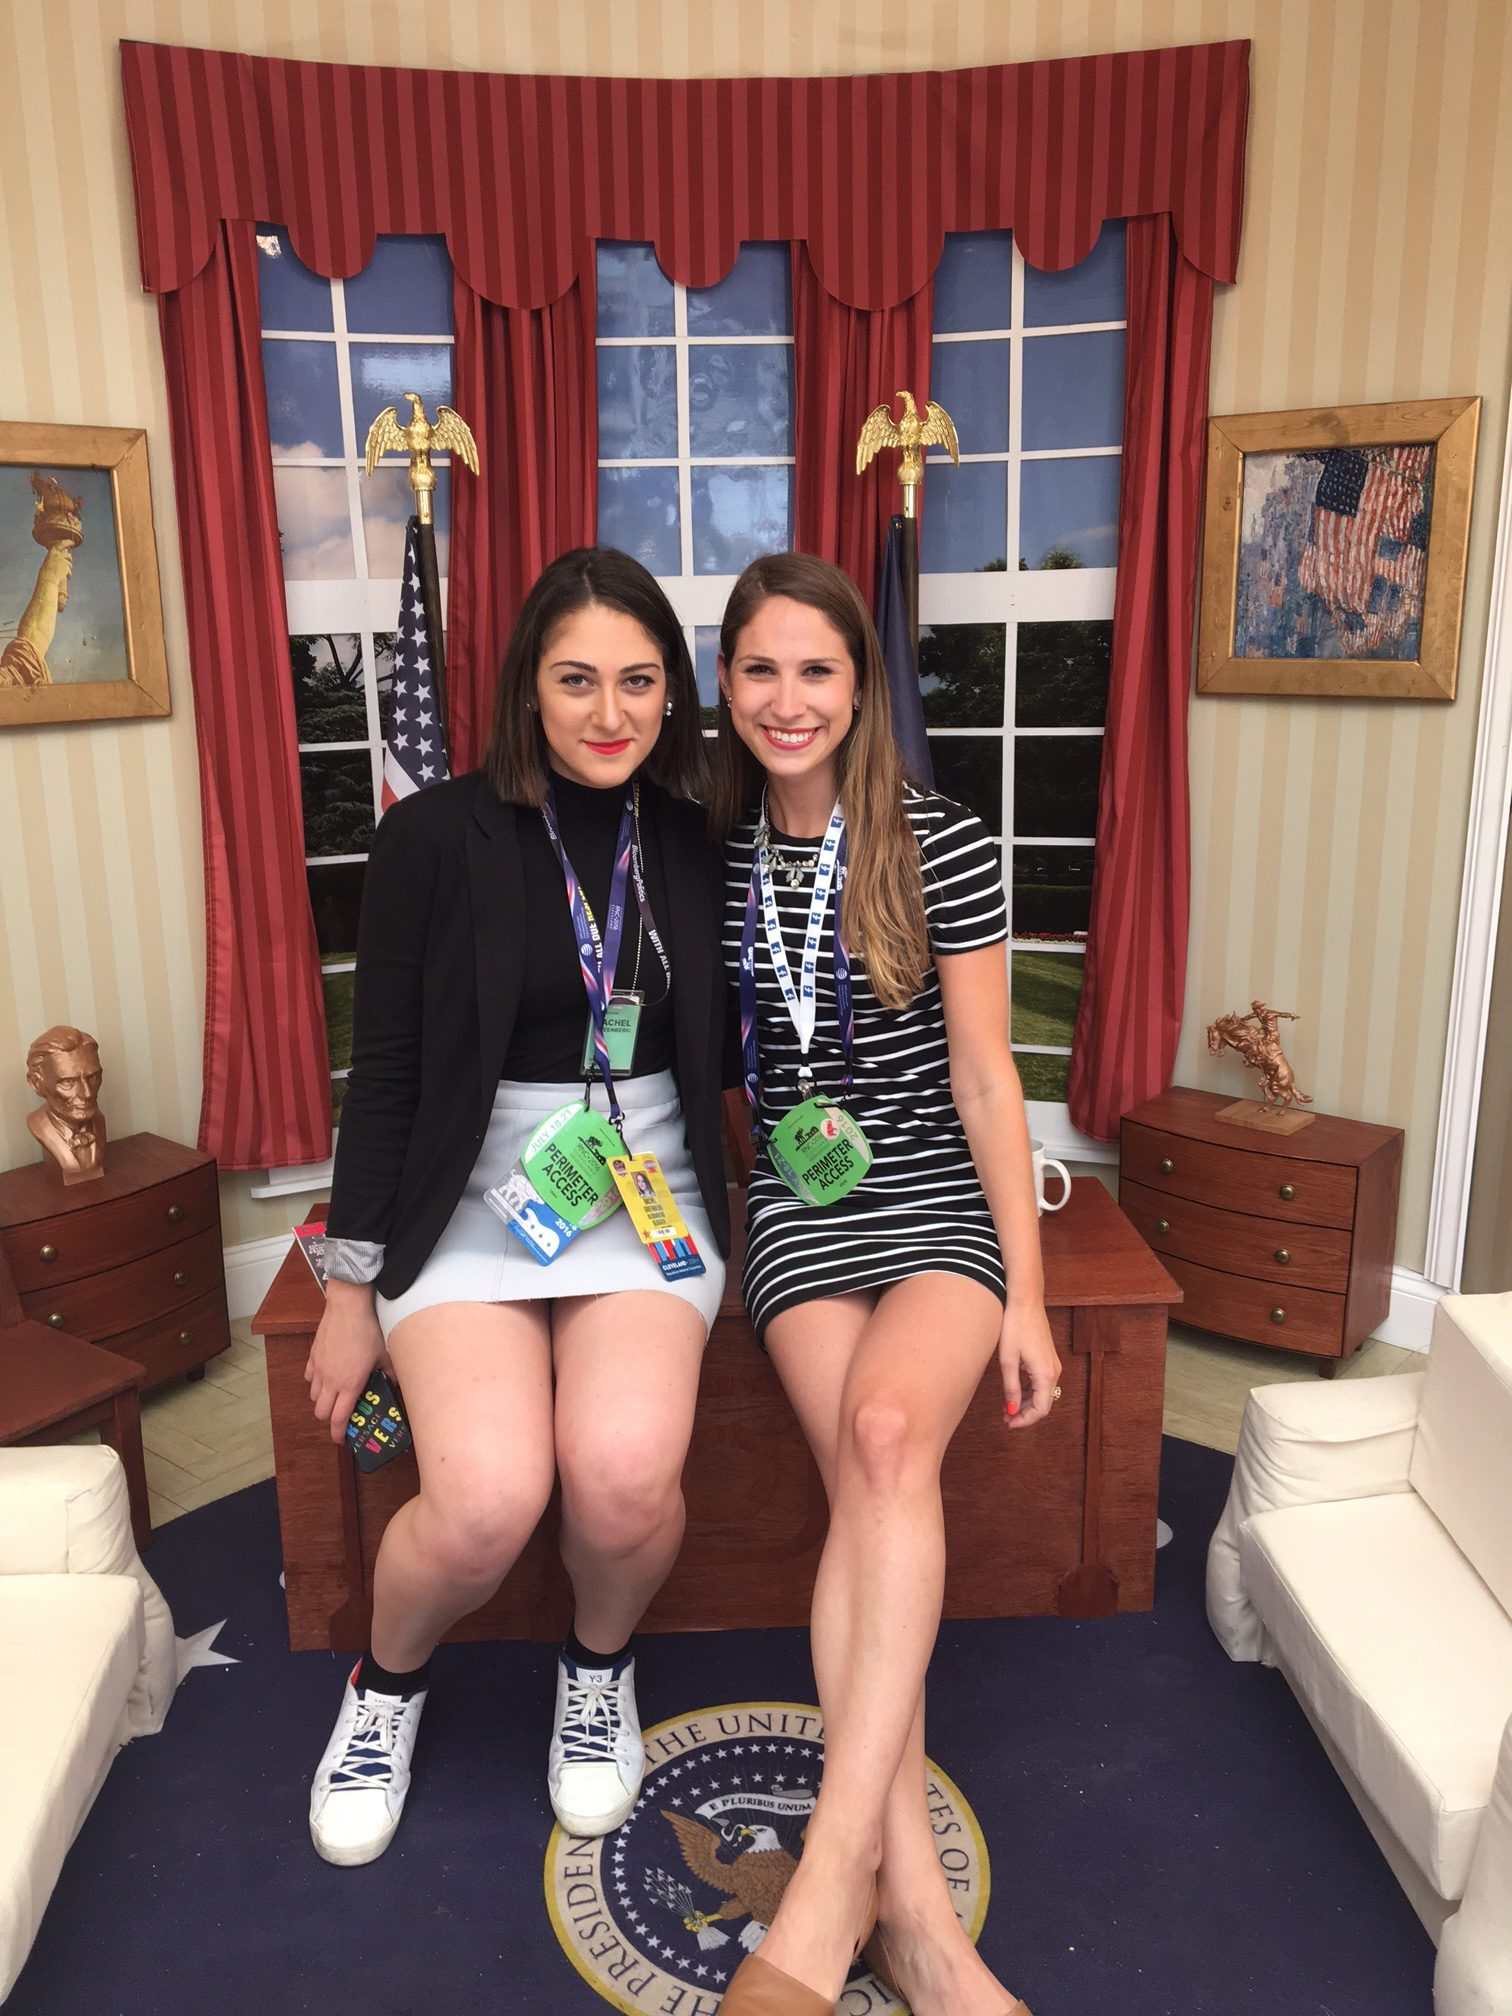 Rachel Greenberg, Volta Insider + Dayna Geldwert, Instagram Politics and Government Outreach